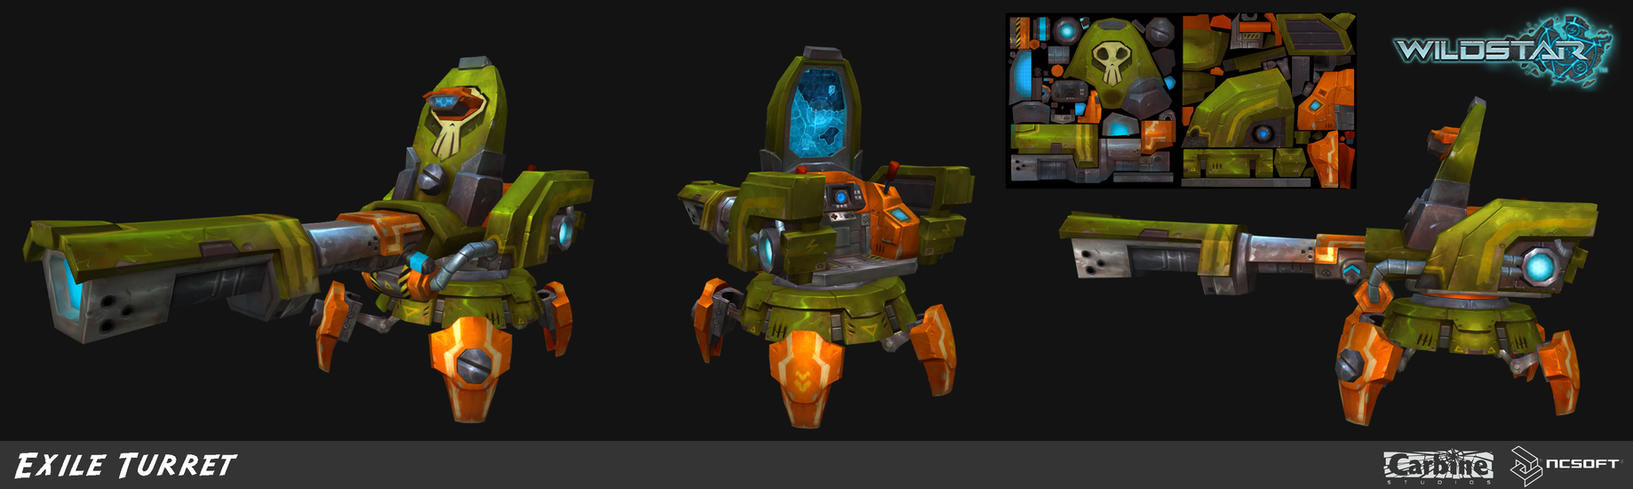 Wildstar Exile Turret by Beezul